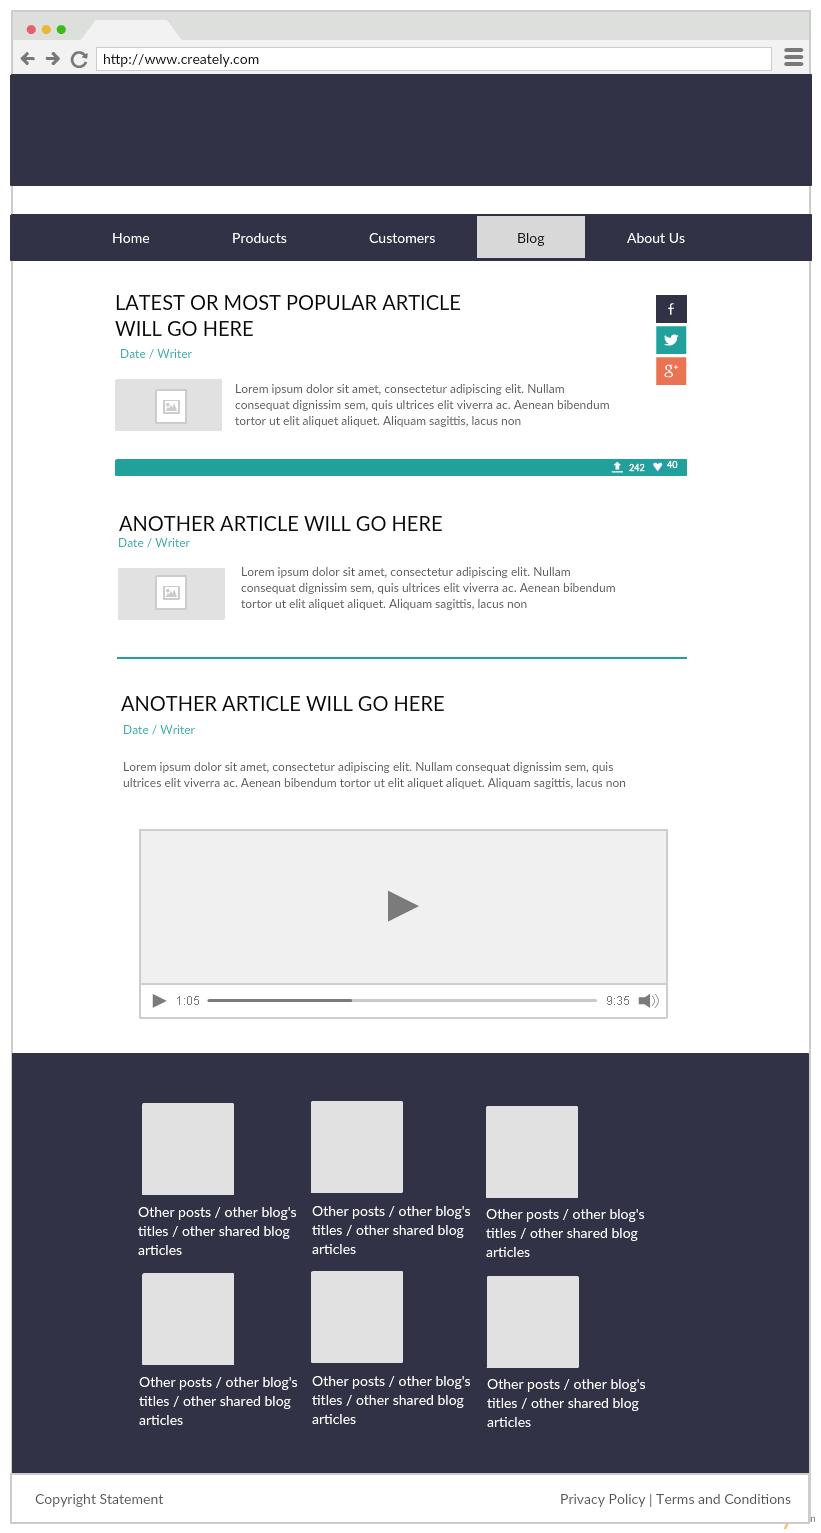 UI Mockup Template of a Blog